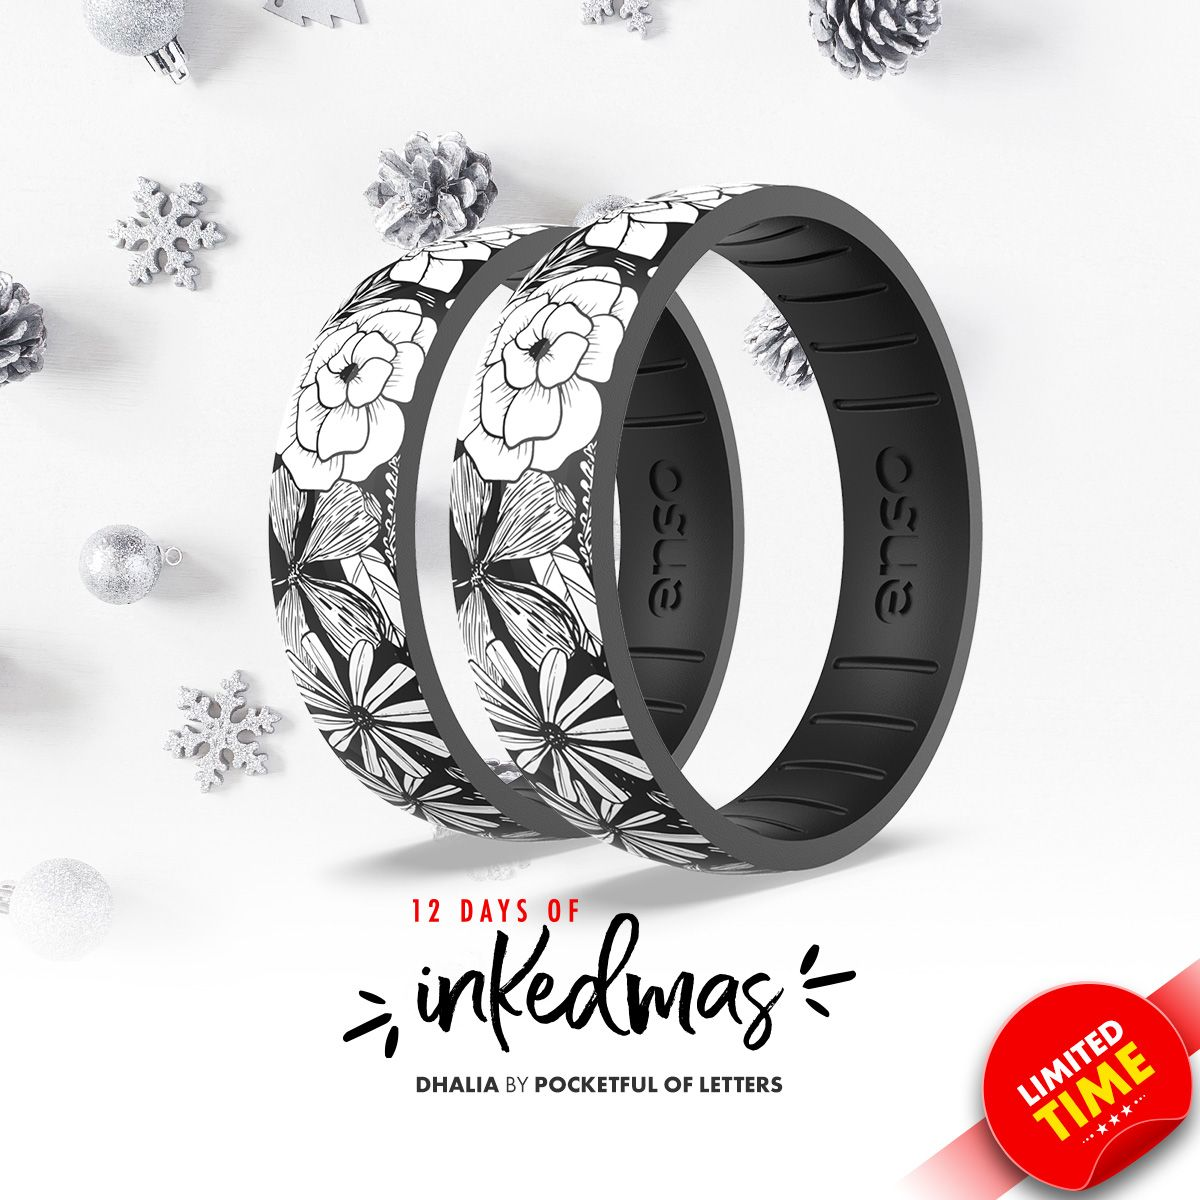 On the twelfth day of #INKEDmas Enso Rings gave to me ... a Dahlia ring by @pocketfulofletters.  https://t.co/2Ph90Frrf1 https://t.co/2sALPO2GXS